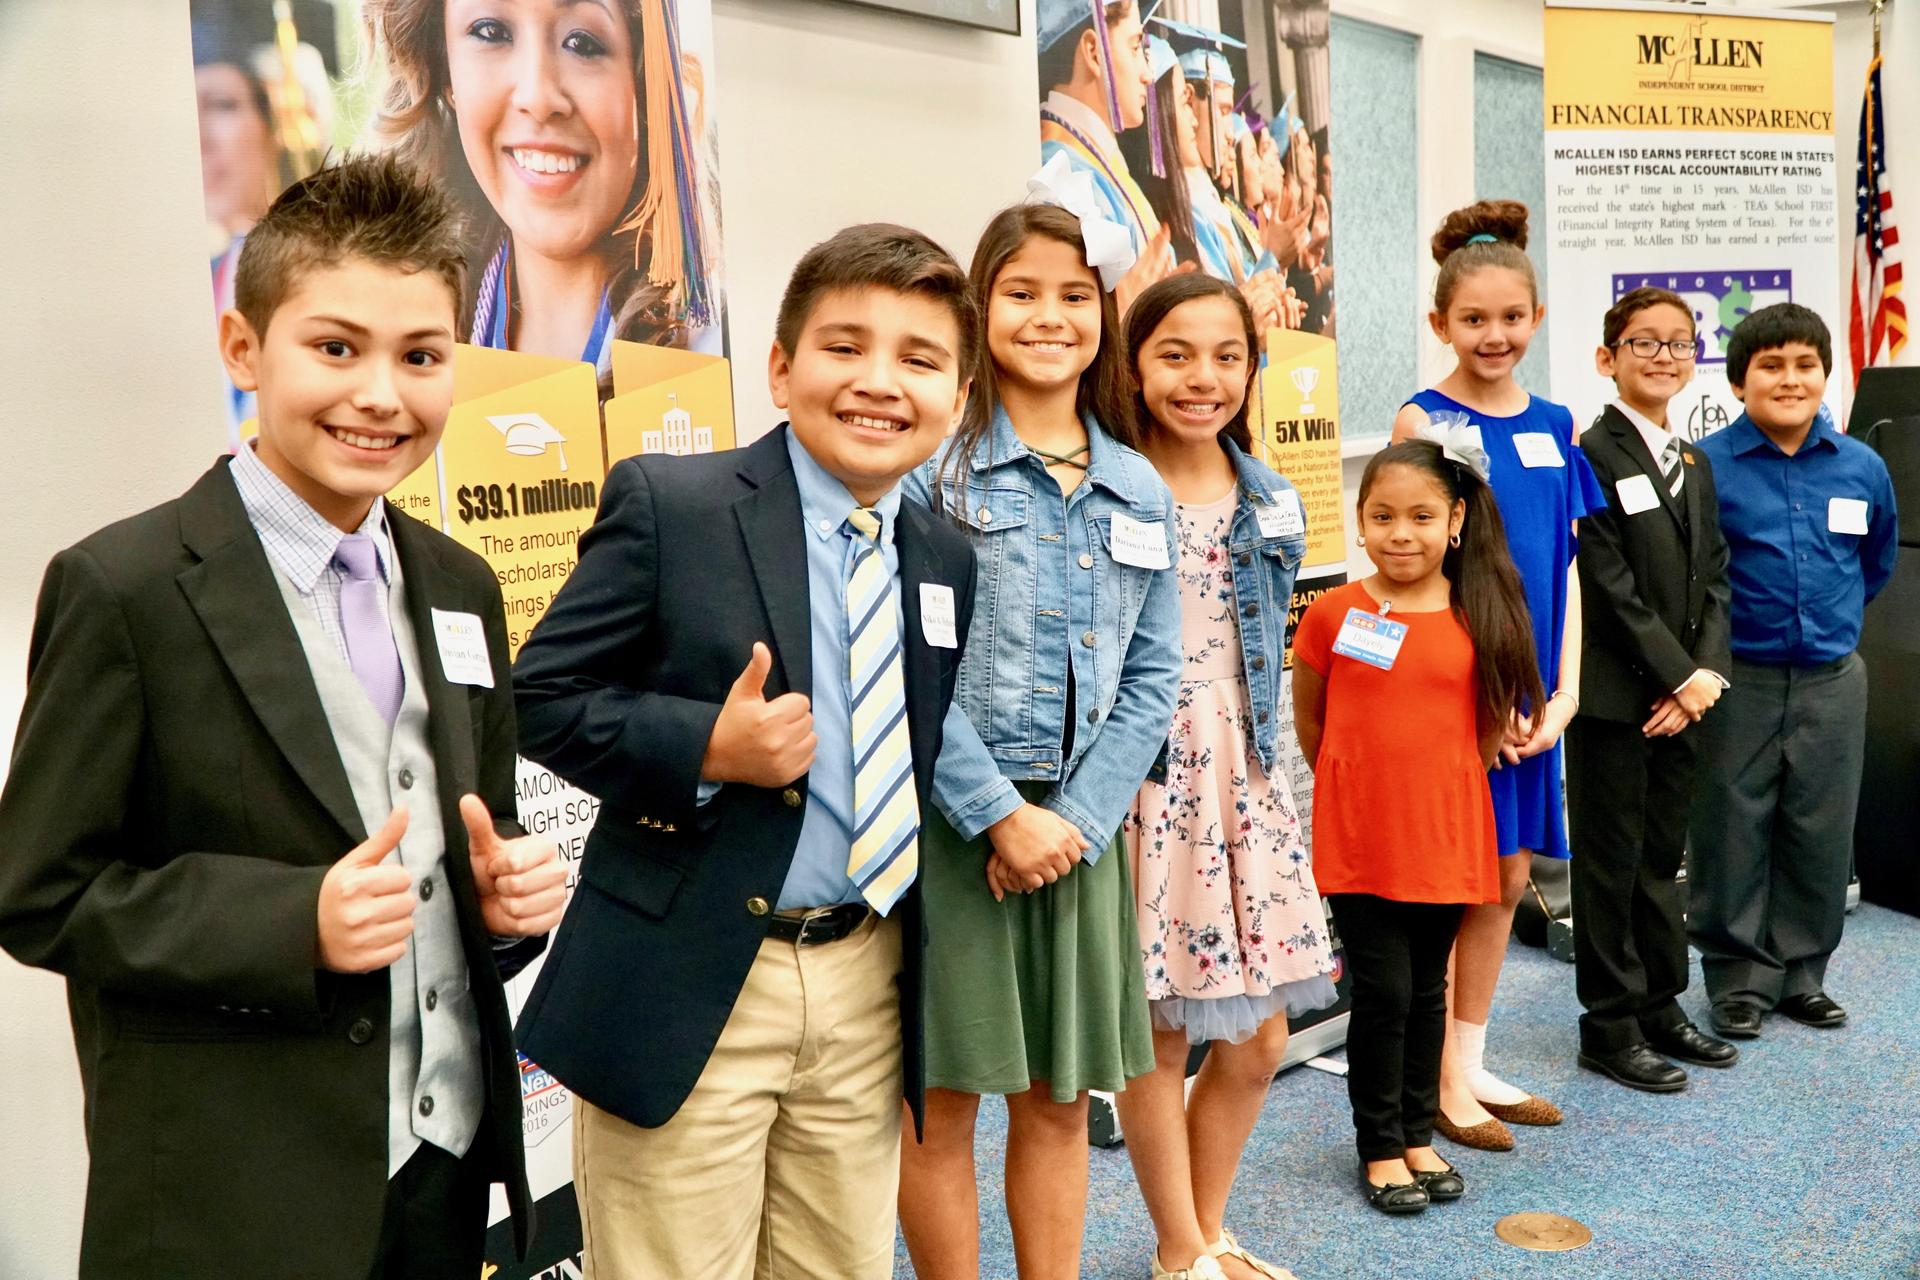 Mcallen Isd Calendar 2021-2022 McAllen Independent School District | Excellence in Education